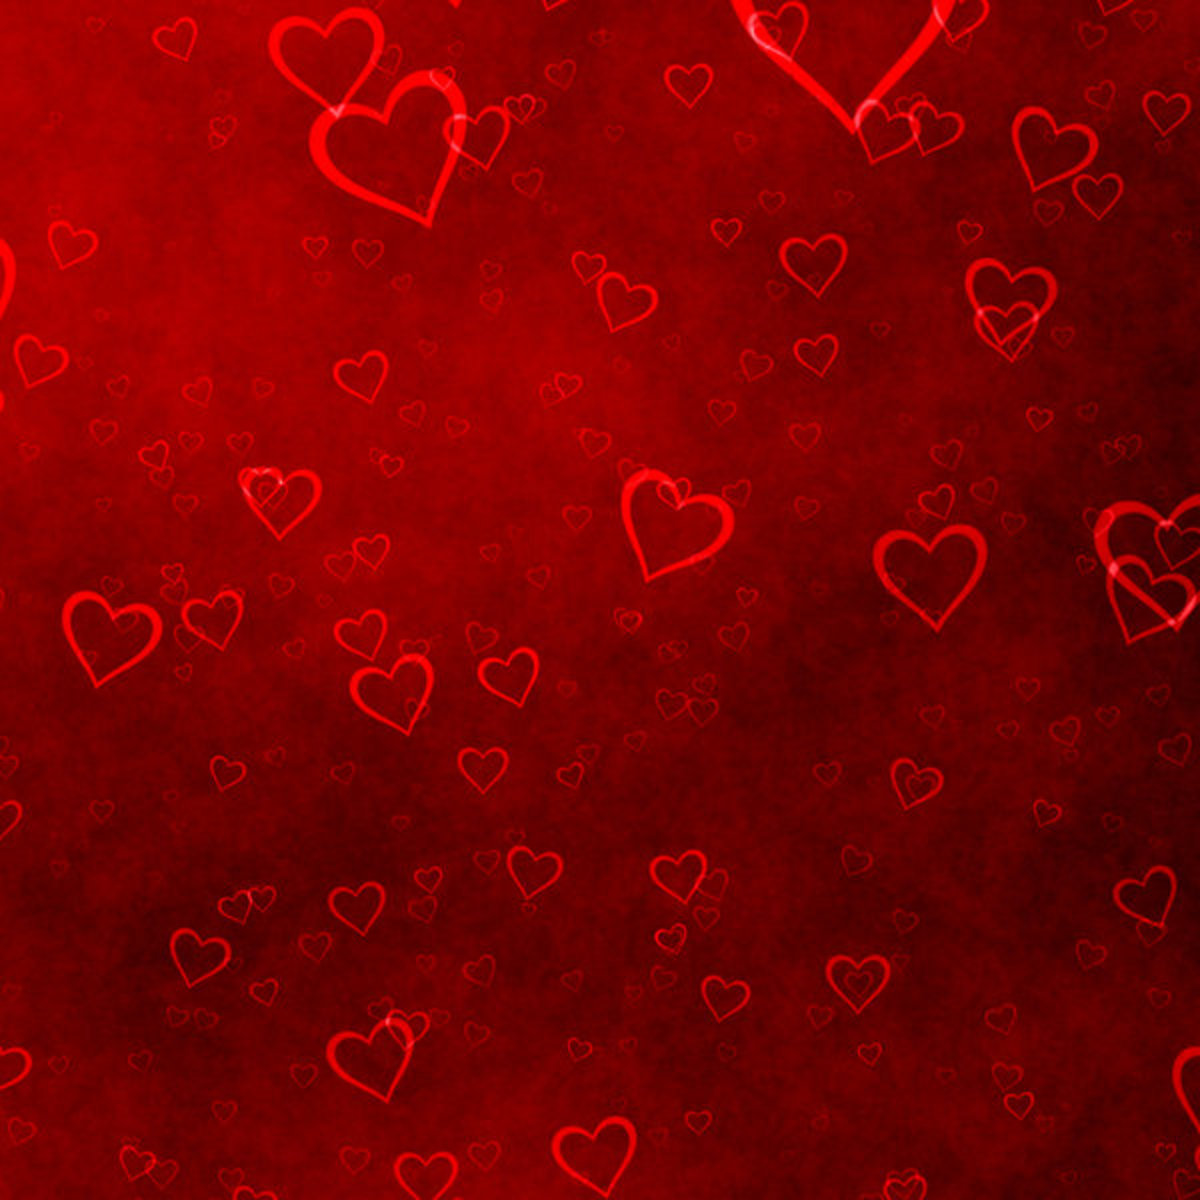 Valentines Hearts Wallpaper